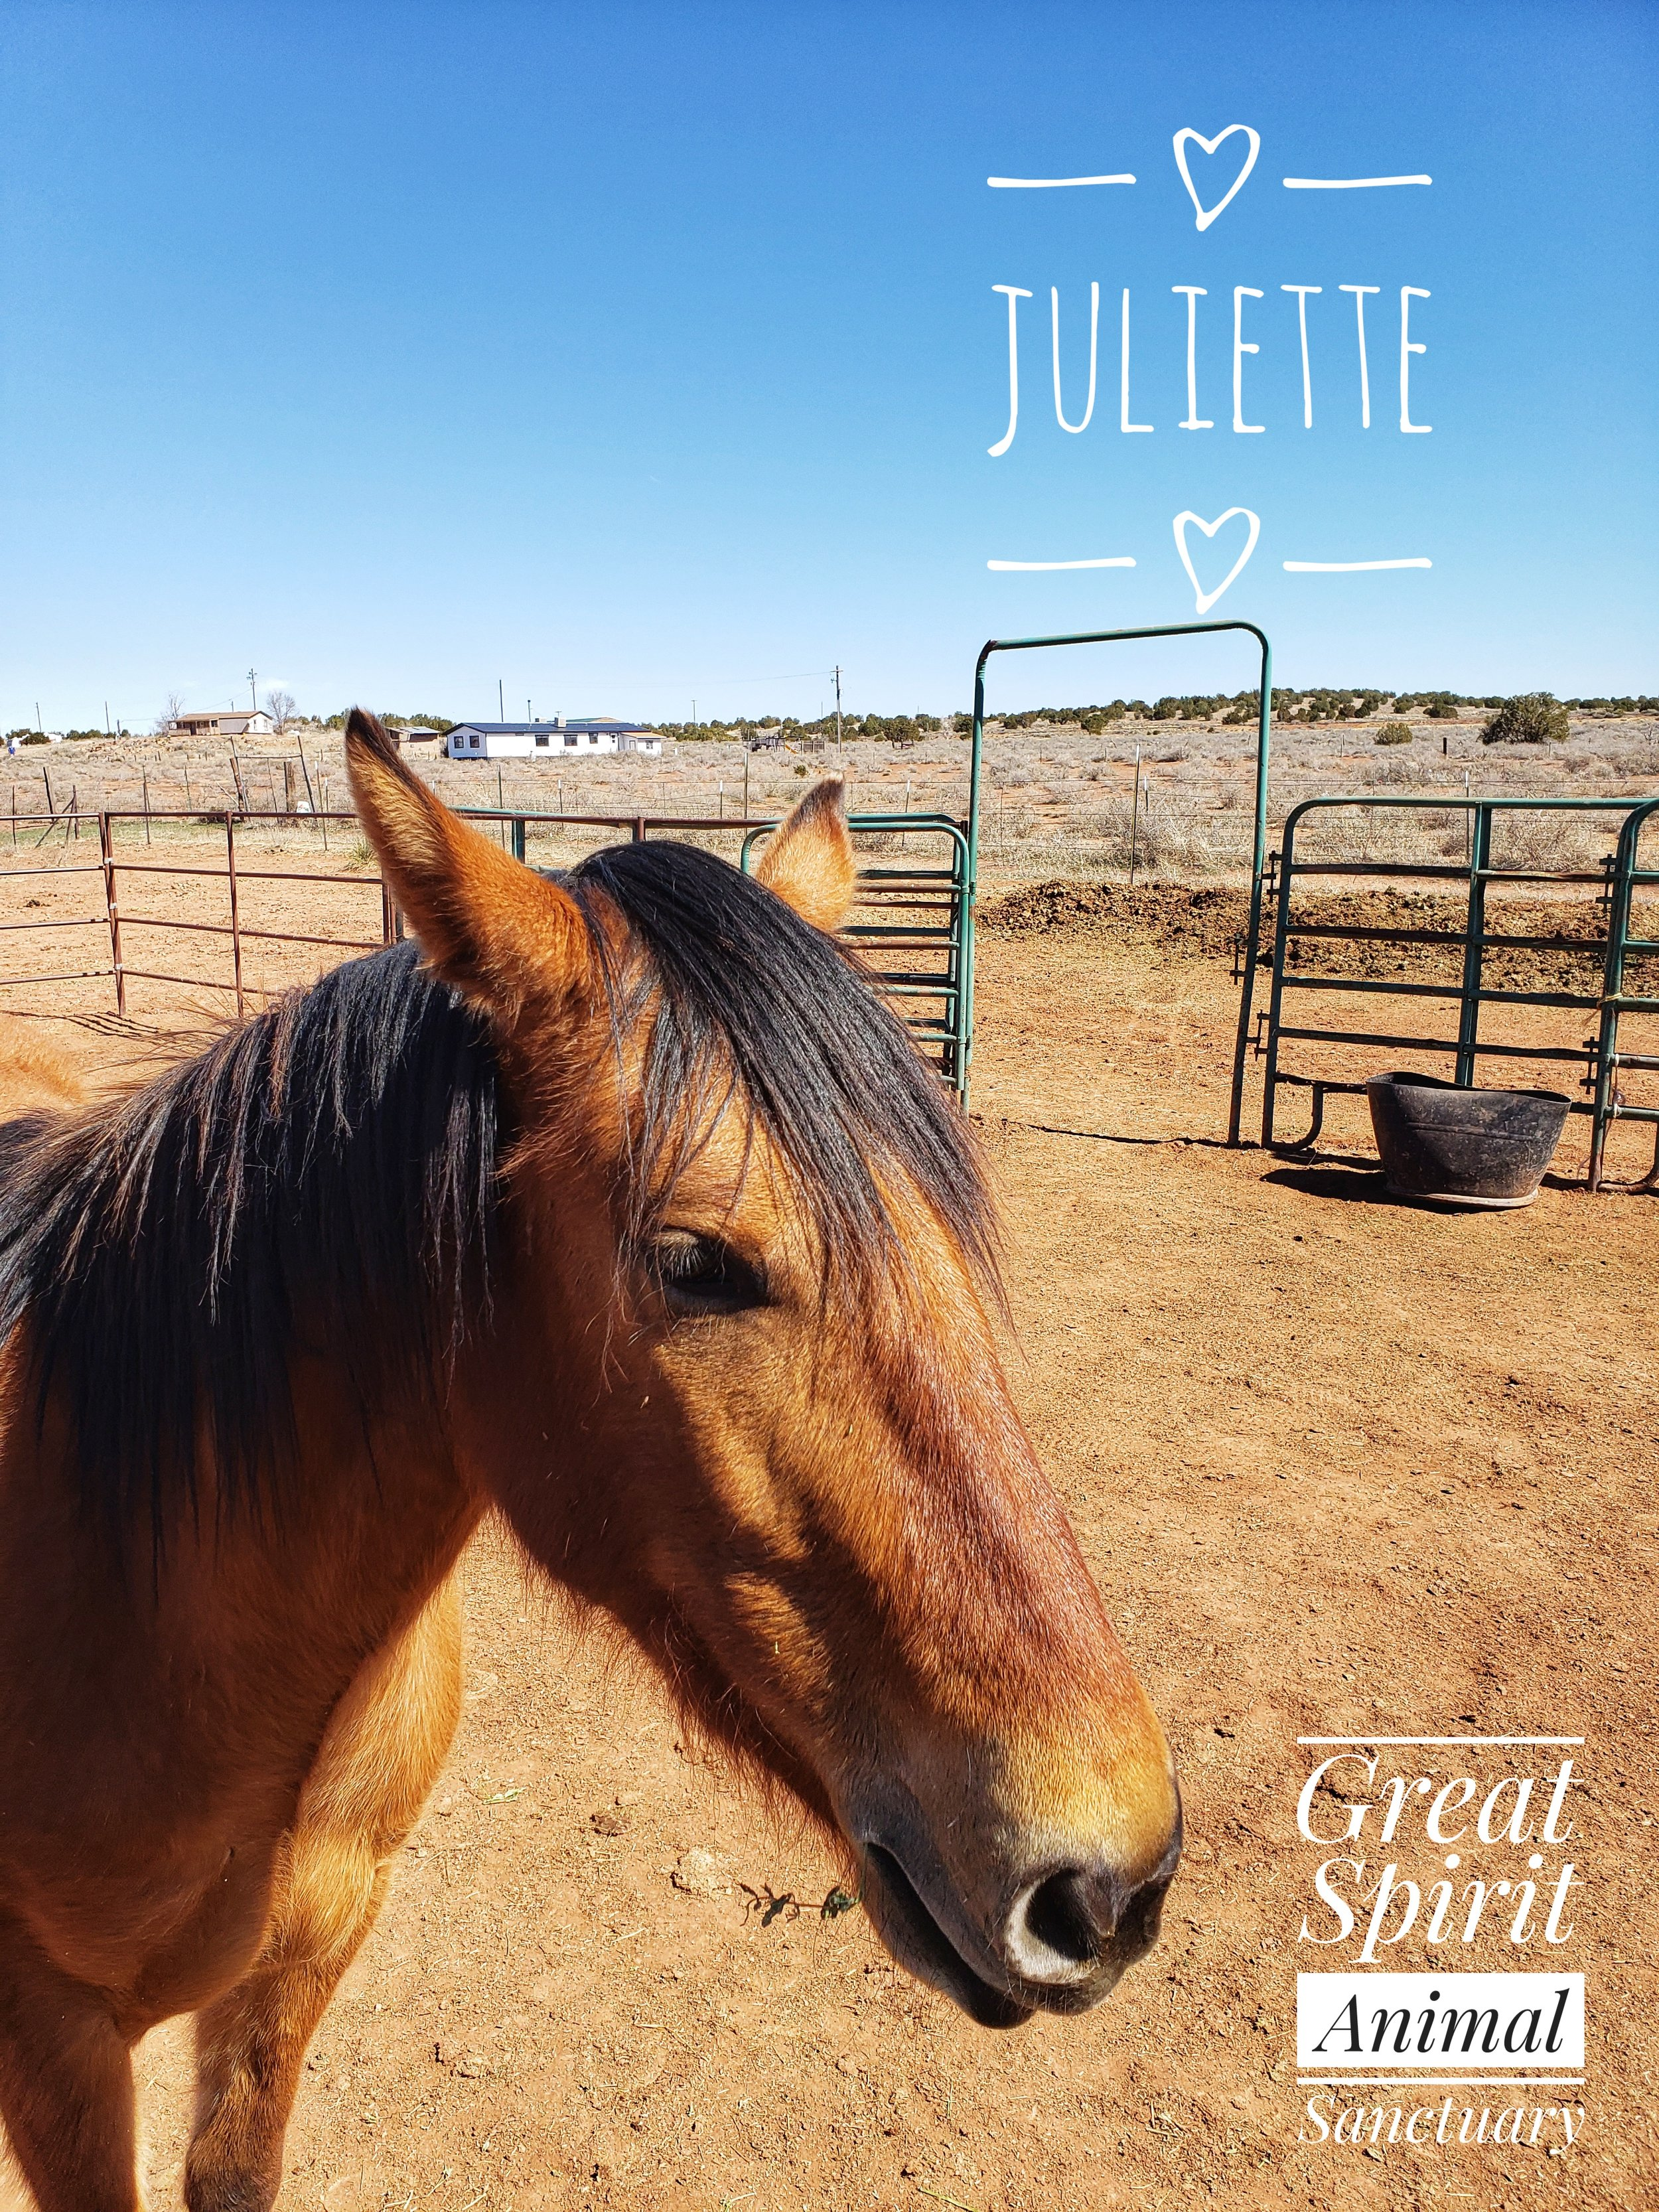 Juliette's Story - Juliette is a youngster yet at approximately 2 years old. Juliette was being ridden daily for rides. Due to the over excessiveness of being ridden at a very young age, she has developed bone on bone injuries to her legs. Juliette can no longer ever be ridden.Juliette has found a permanent home for the remaining years of her life at Great Spirit Animal Sanctuary. She never has to worry about being abused again. Juliette arrived at the Sanctuary on Thanksgiving in 2018.Juliette is hoping that you become one of her monthly sponsors today. Her sponsors help pay her medical and feed costs.